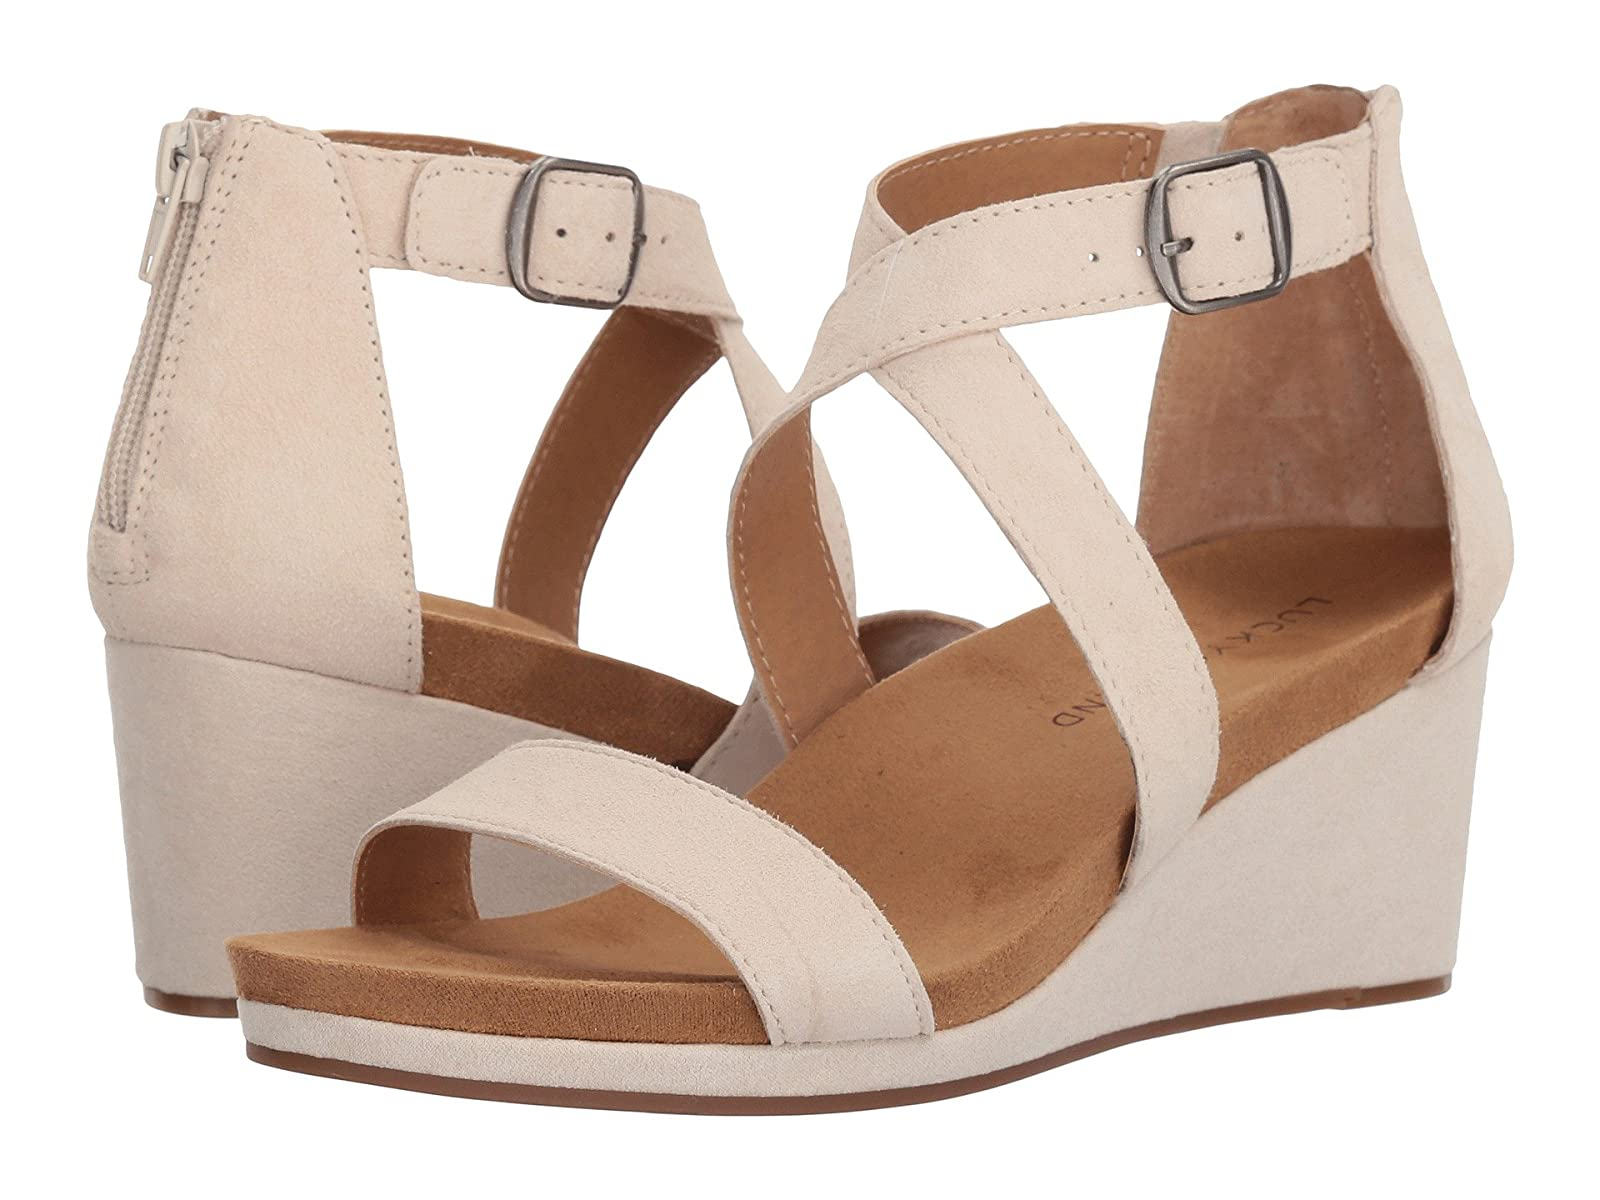 Lucky Brand KenadeeAtmospheric grades have affordable shoes